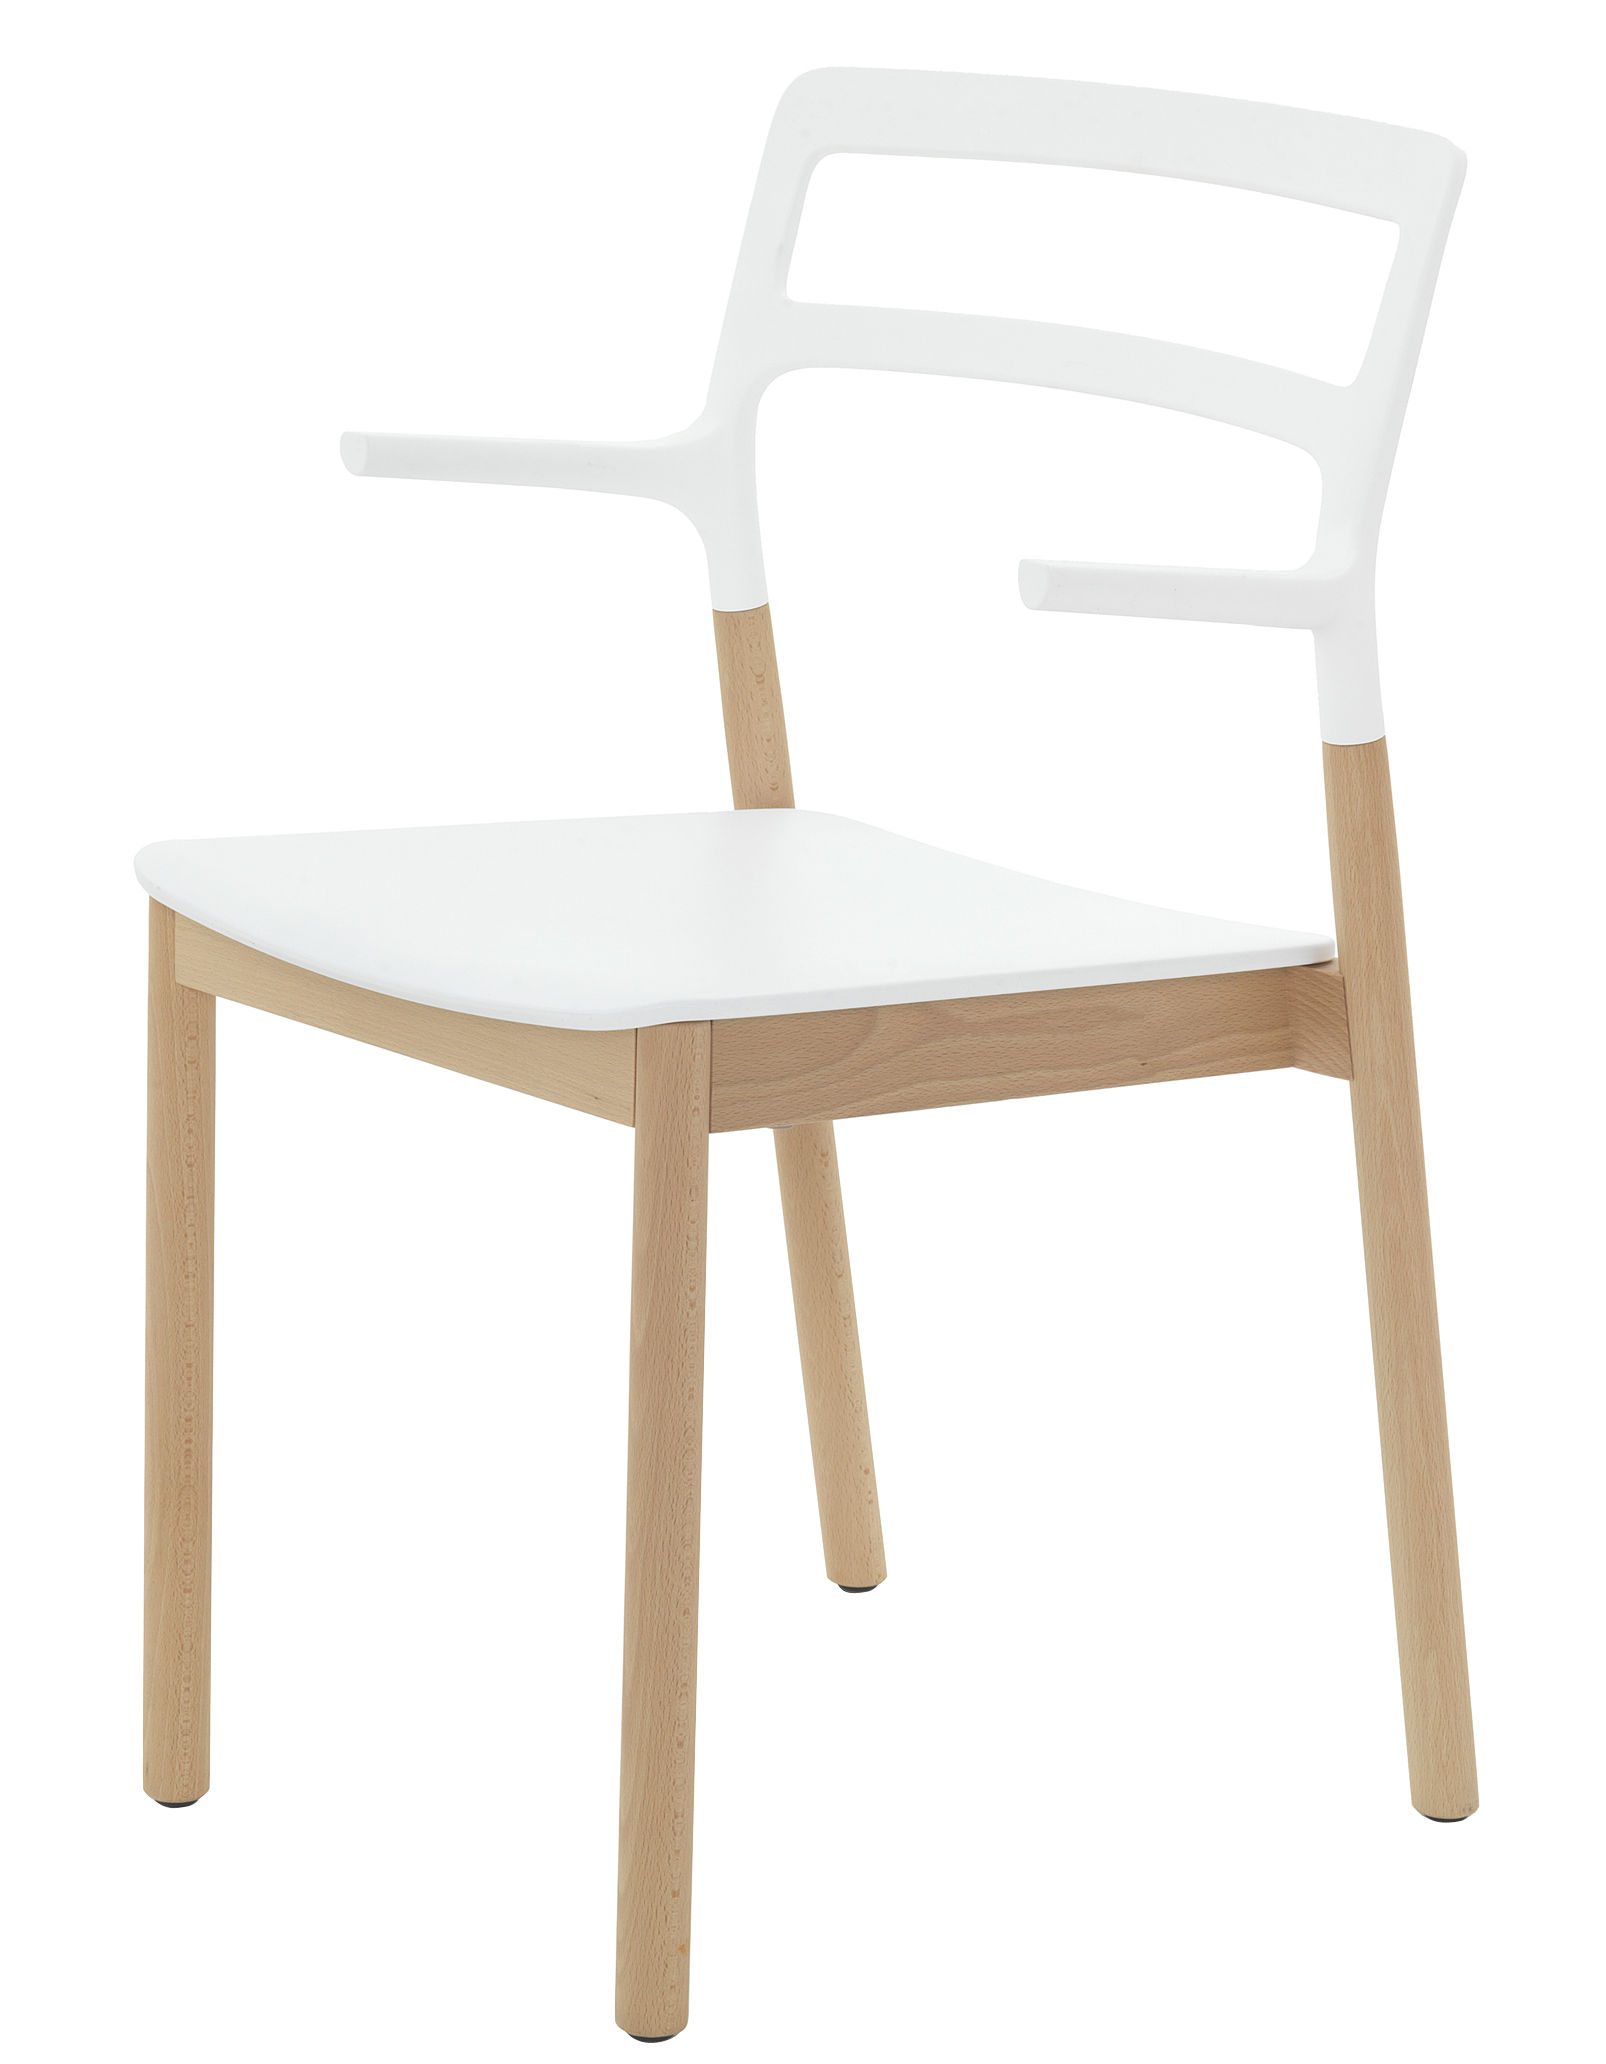 Furniture - Chairs - Florinda Stackable armchair - Wood & plastic by De Padova - White - Natural beech, Plastic material